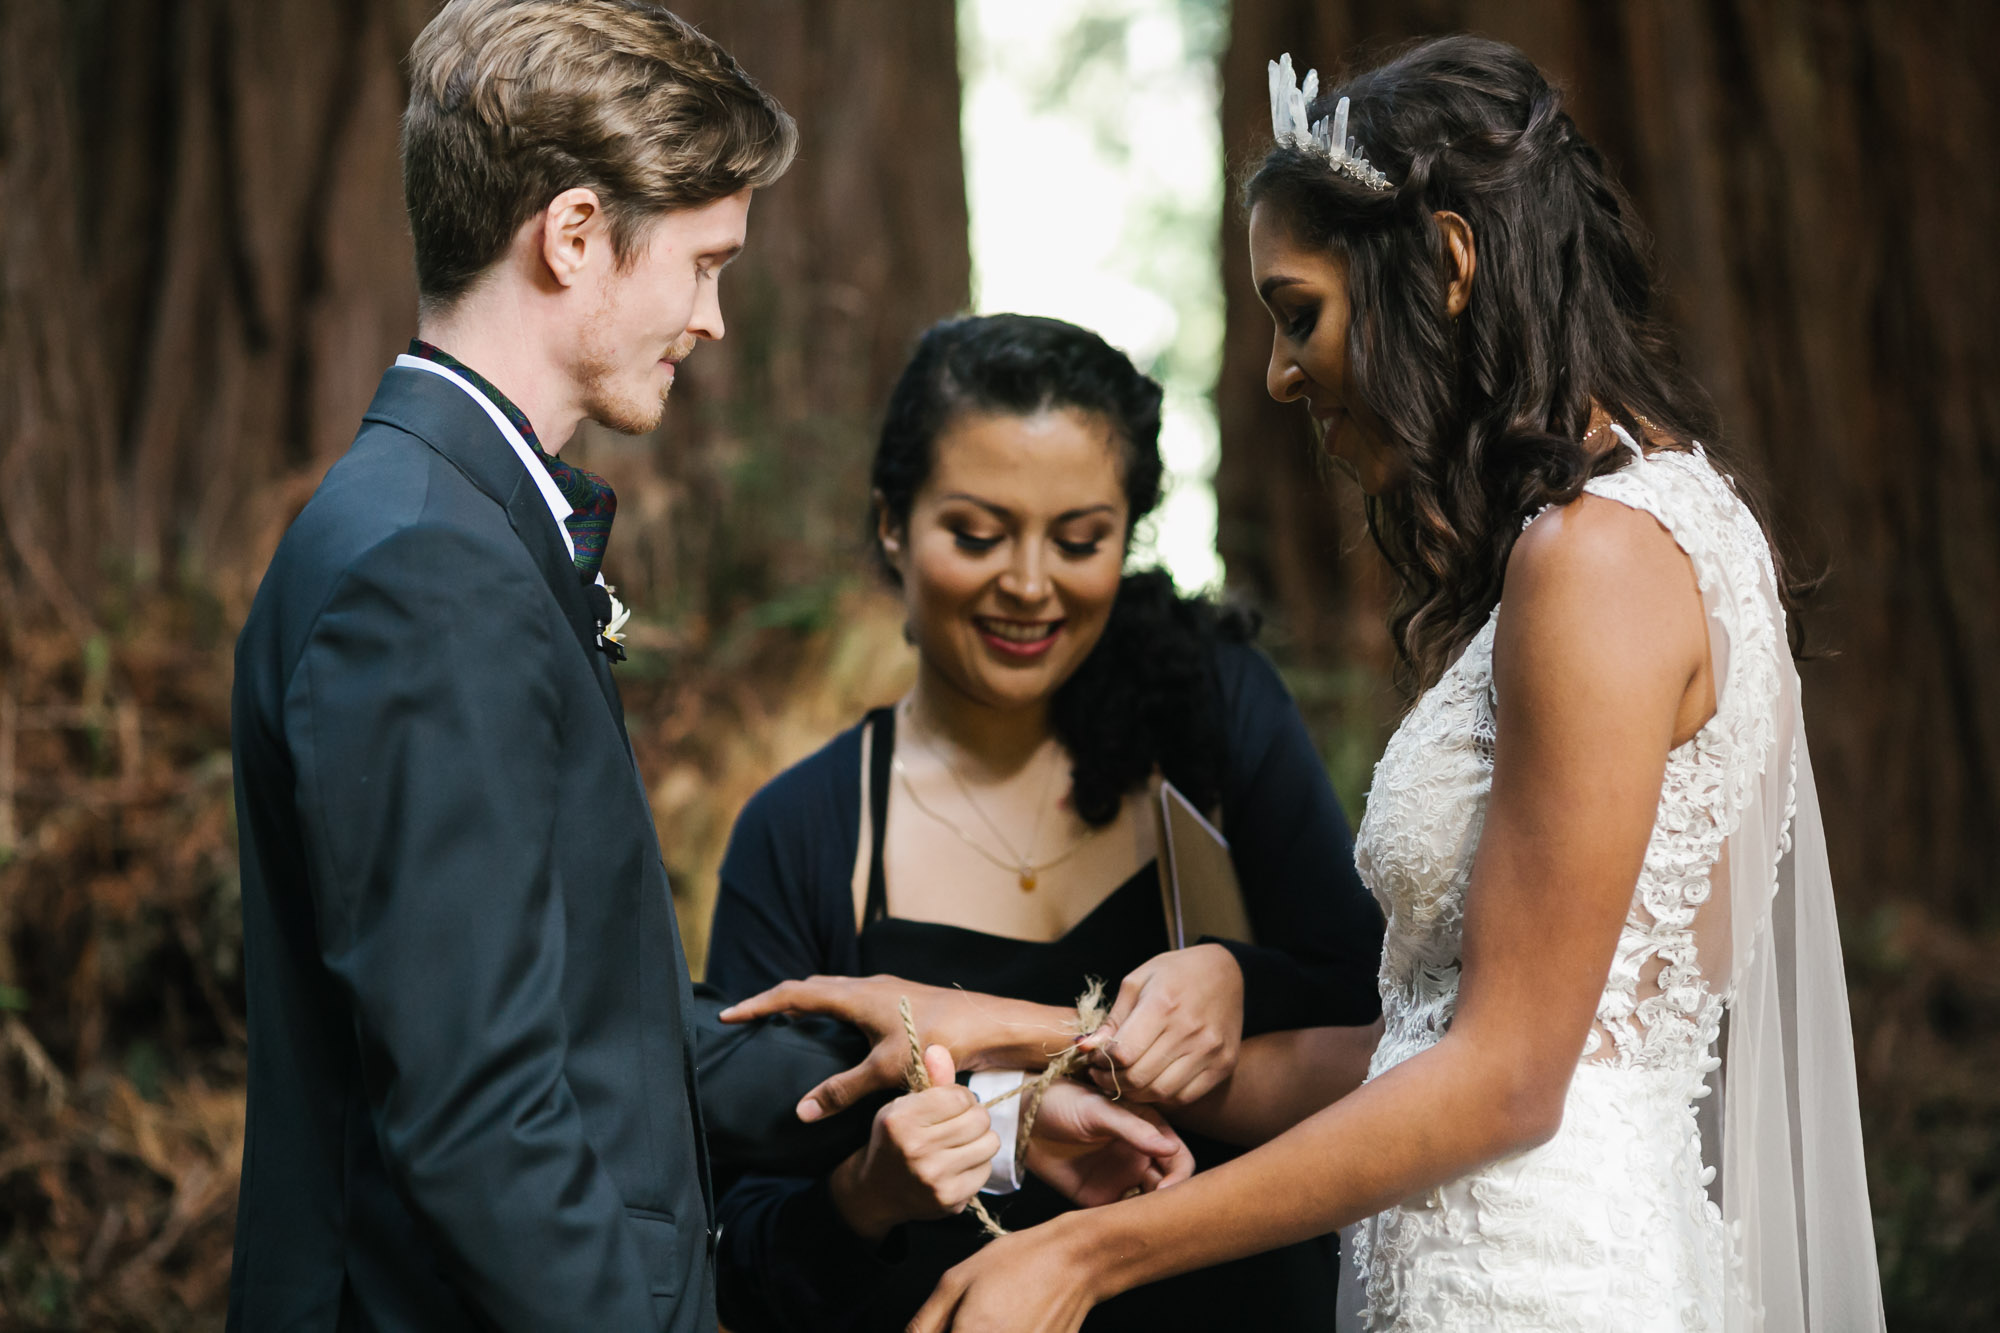 Wedding couple bind hands with rope during ceremony